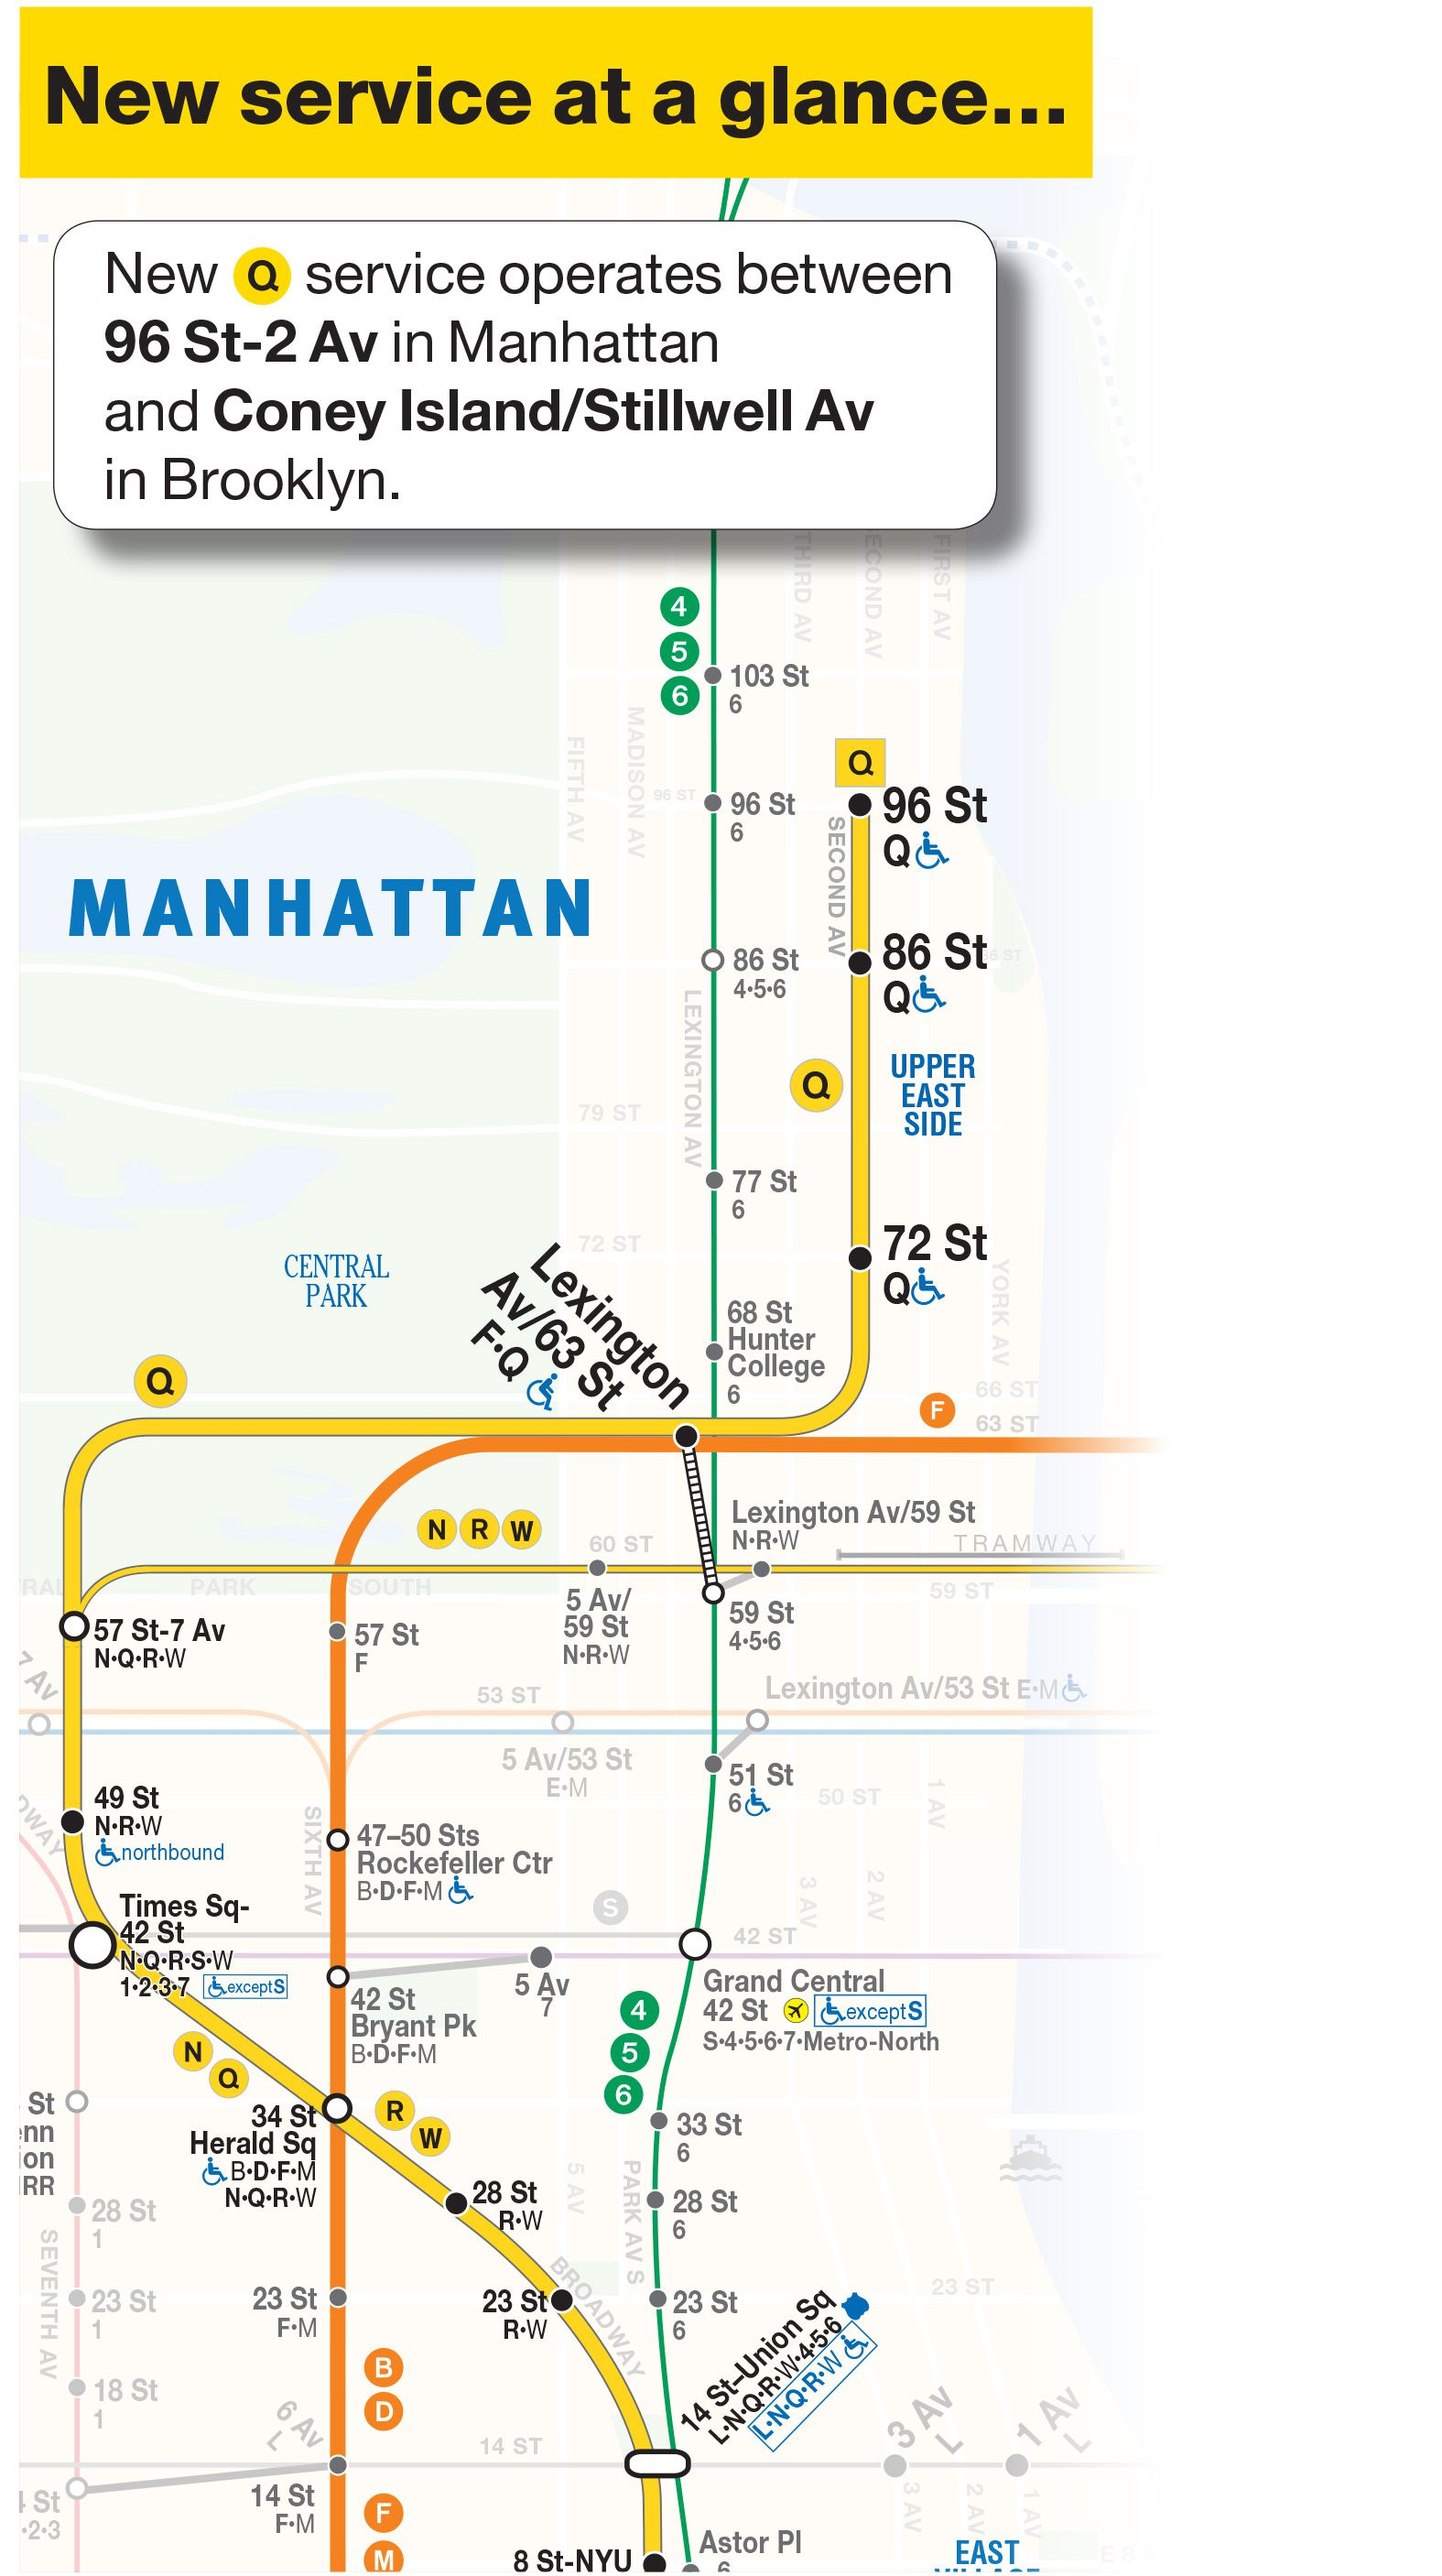 Nyc Subway Map W Line.Mta Info Nqrw Guide Design Maps Subway Map Activities In